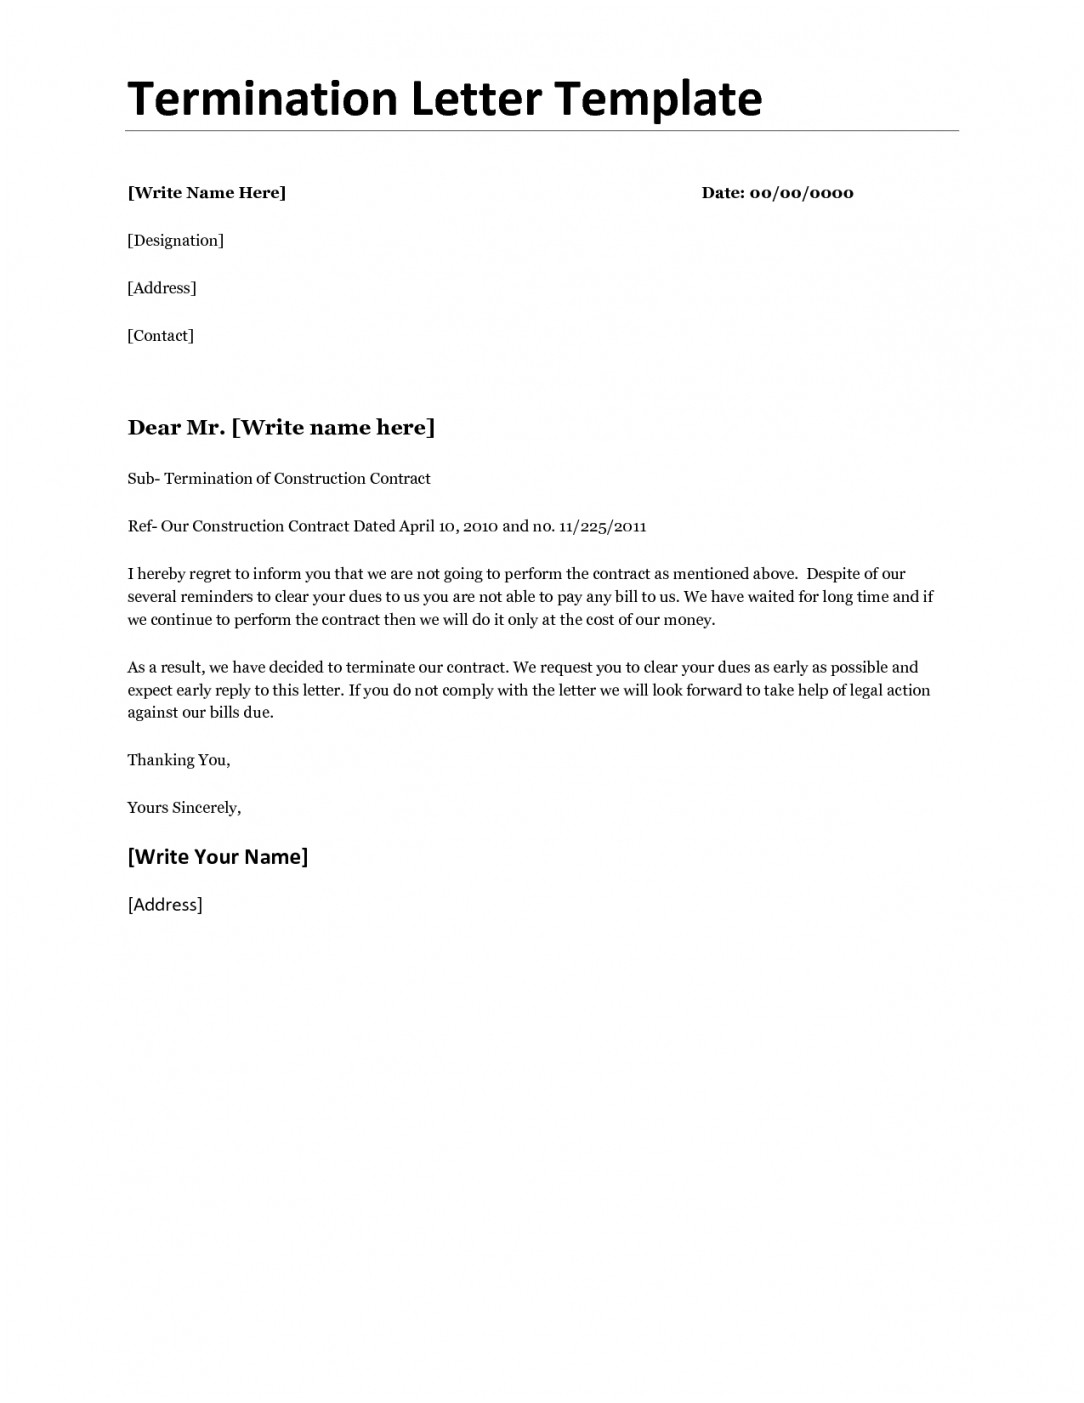 Timeshare Cancellation Letter Template Samples | Letter